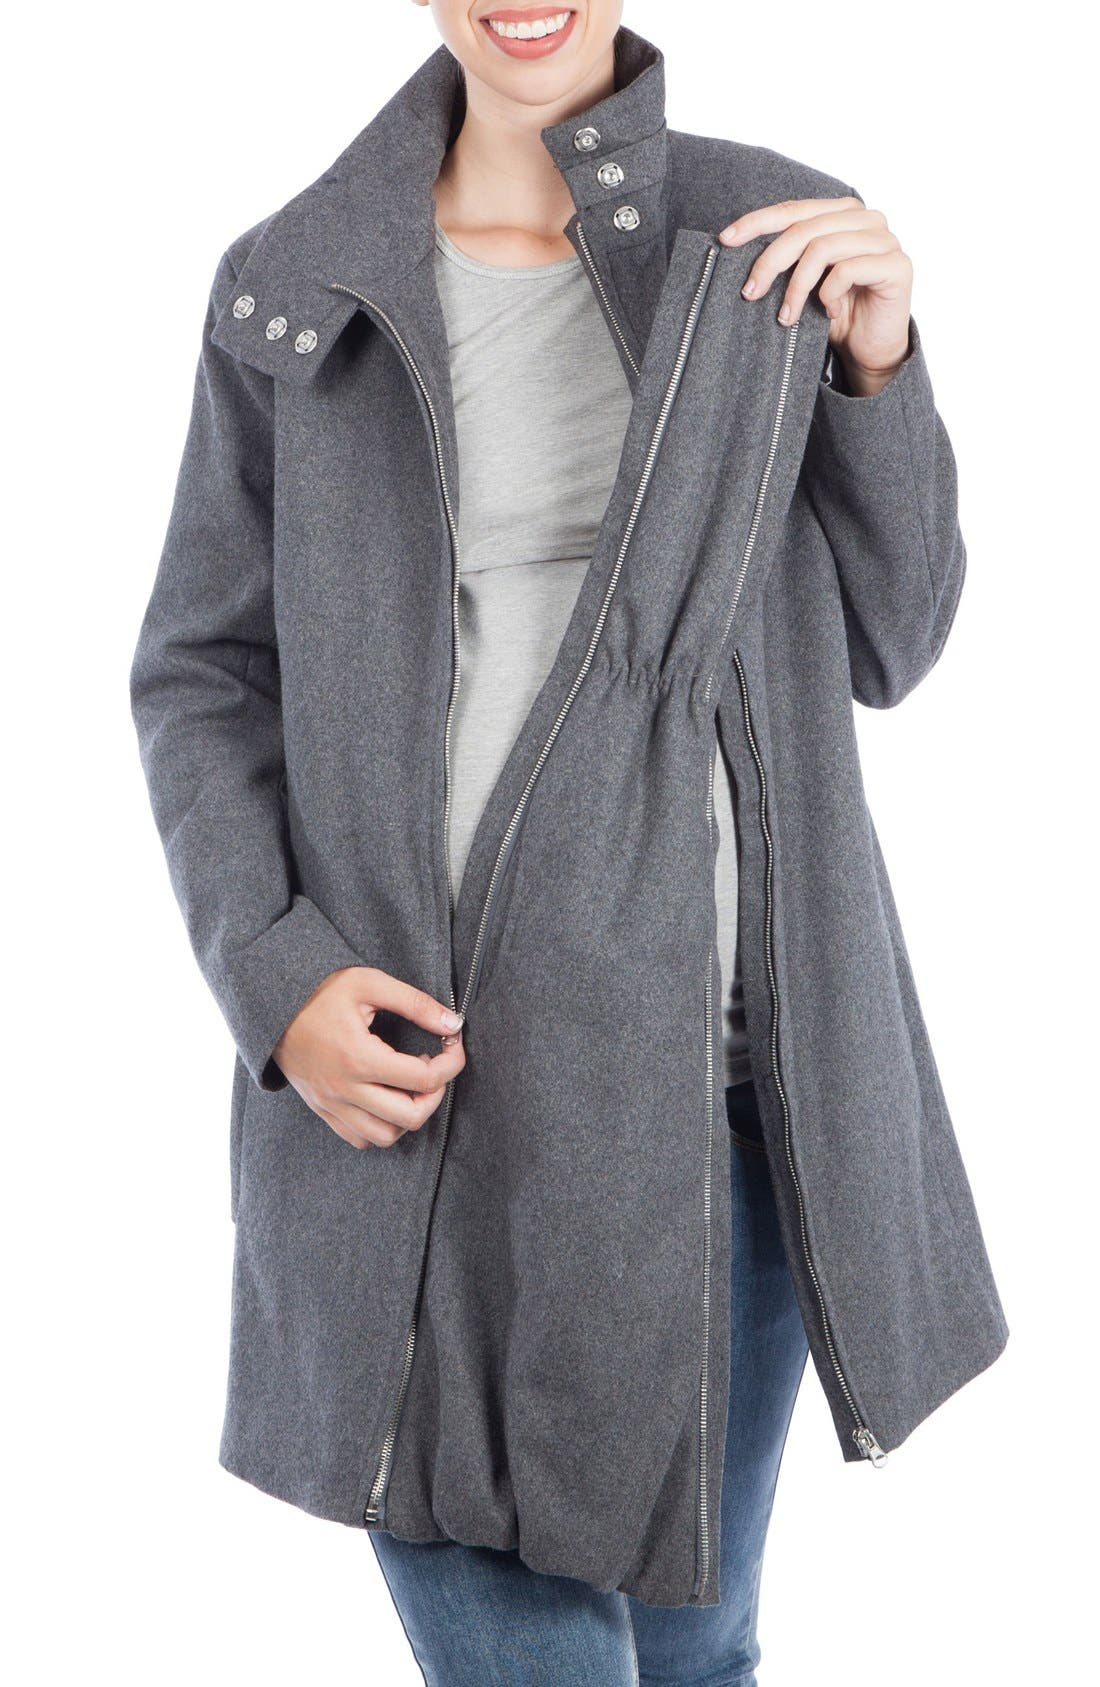 A-Line Convertible 3-in-1 Maternity Swing Coat,                             Alternate thumbnail 5, color,                             Grey